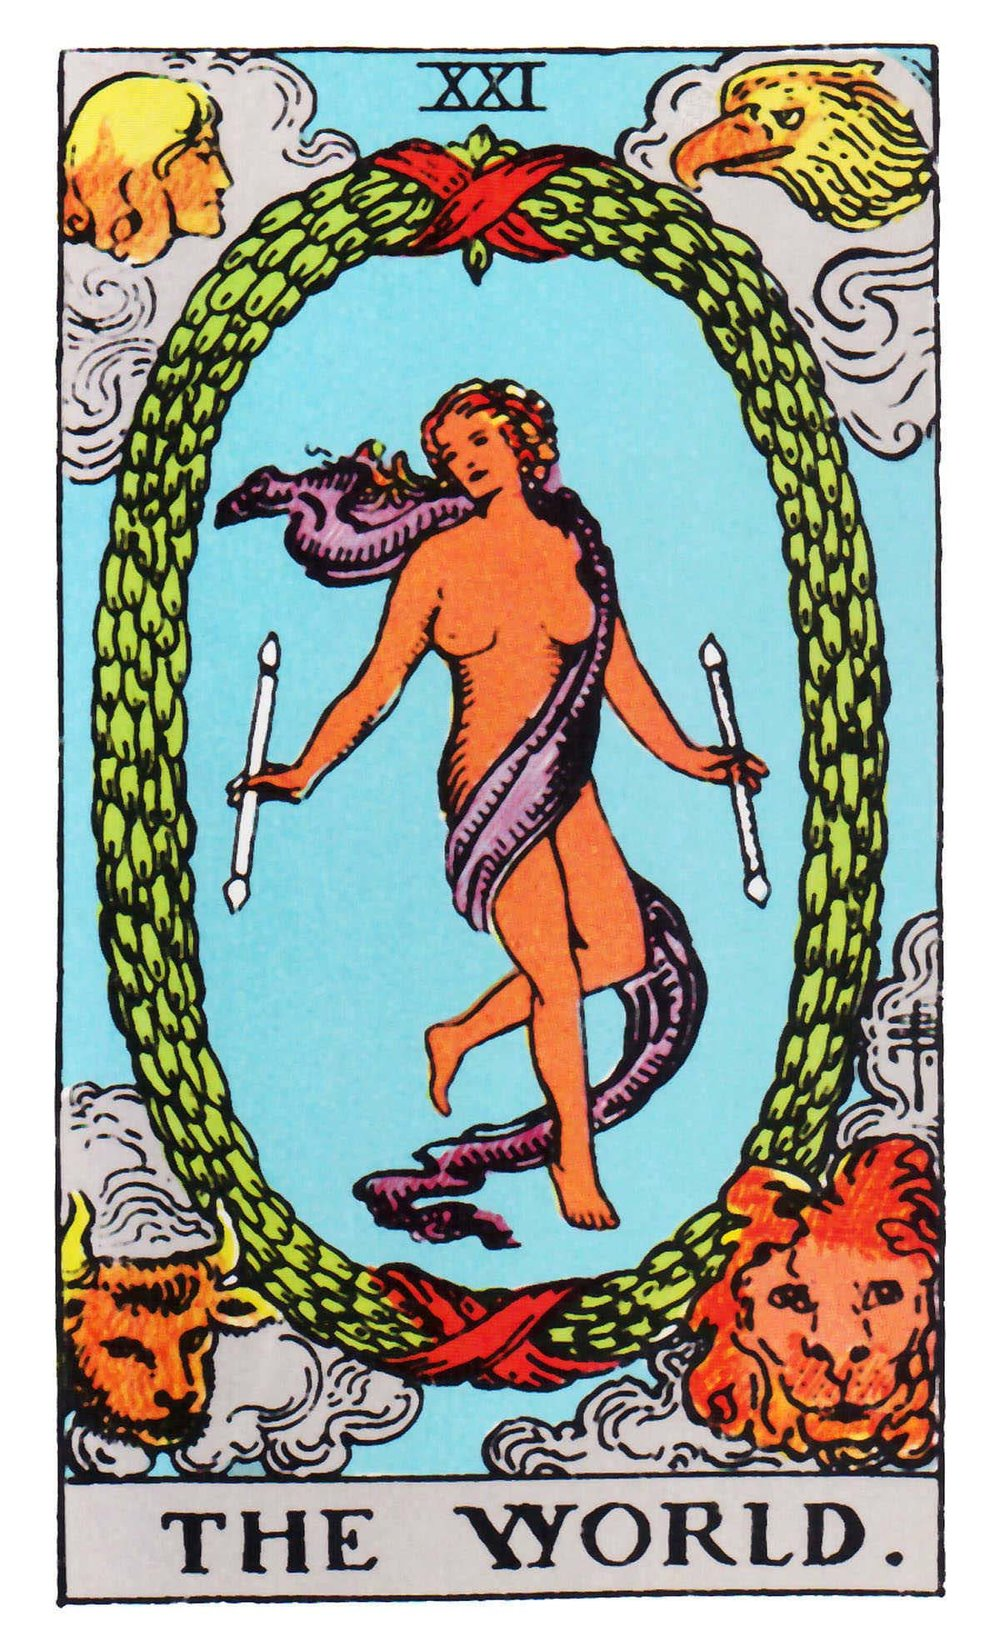 Le Monde / The World; Tarot Card of the Major Arcana